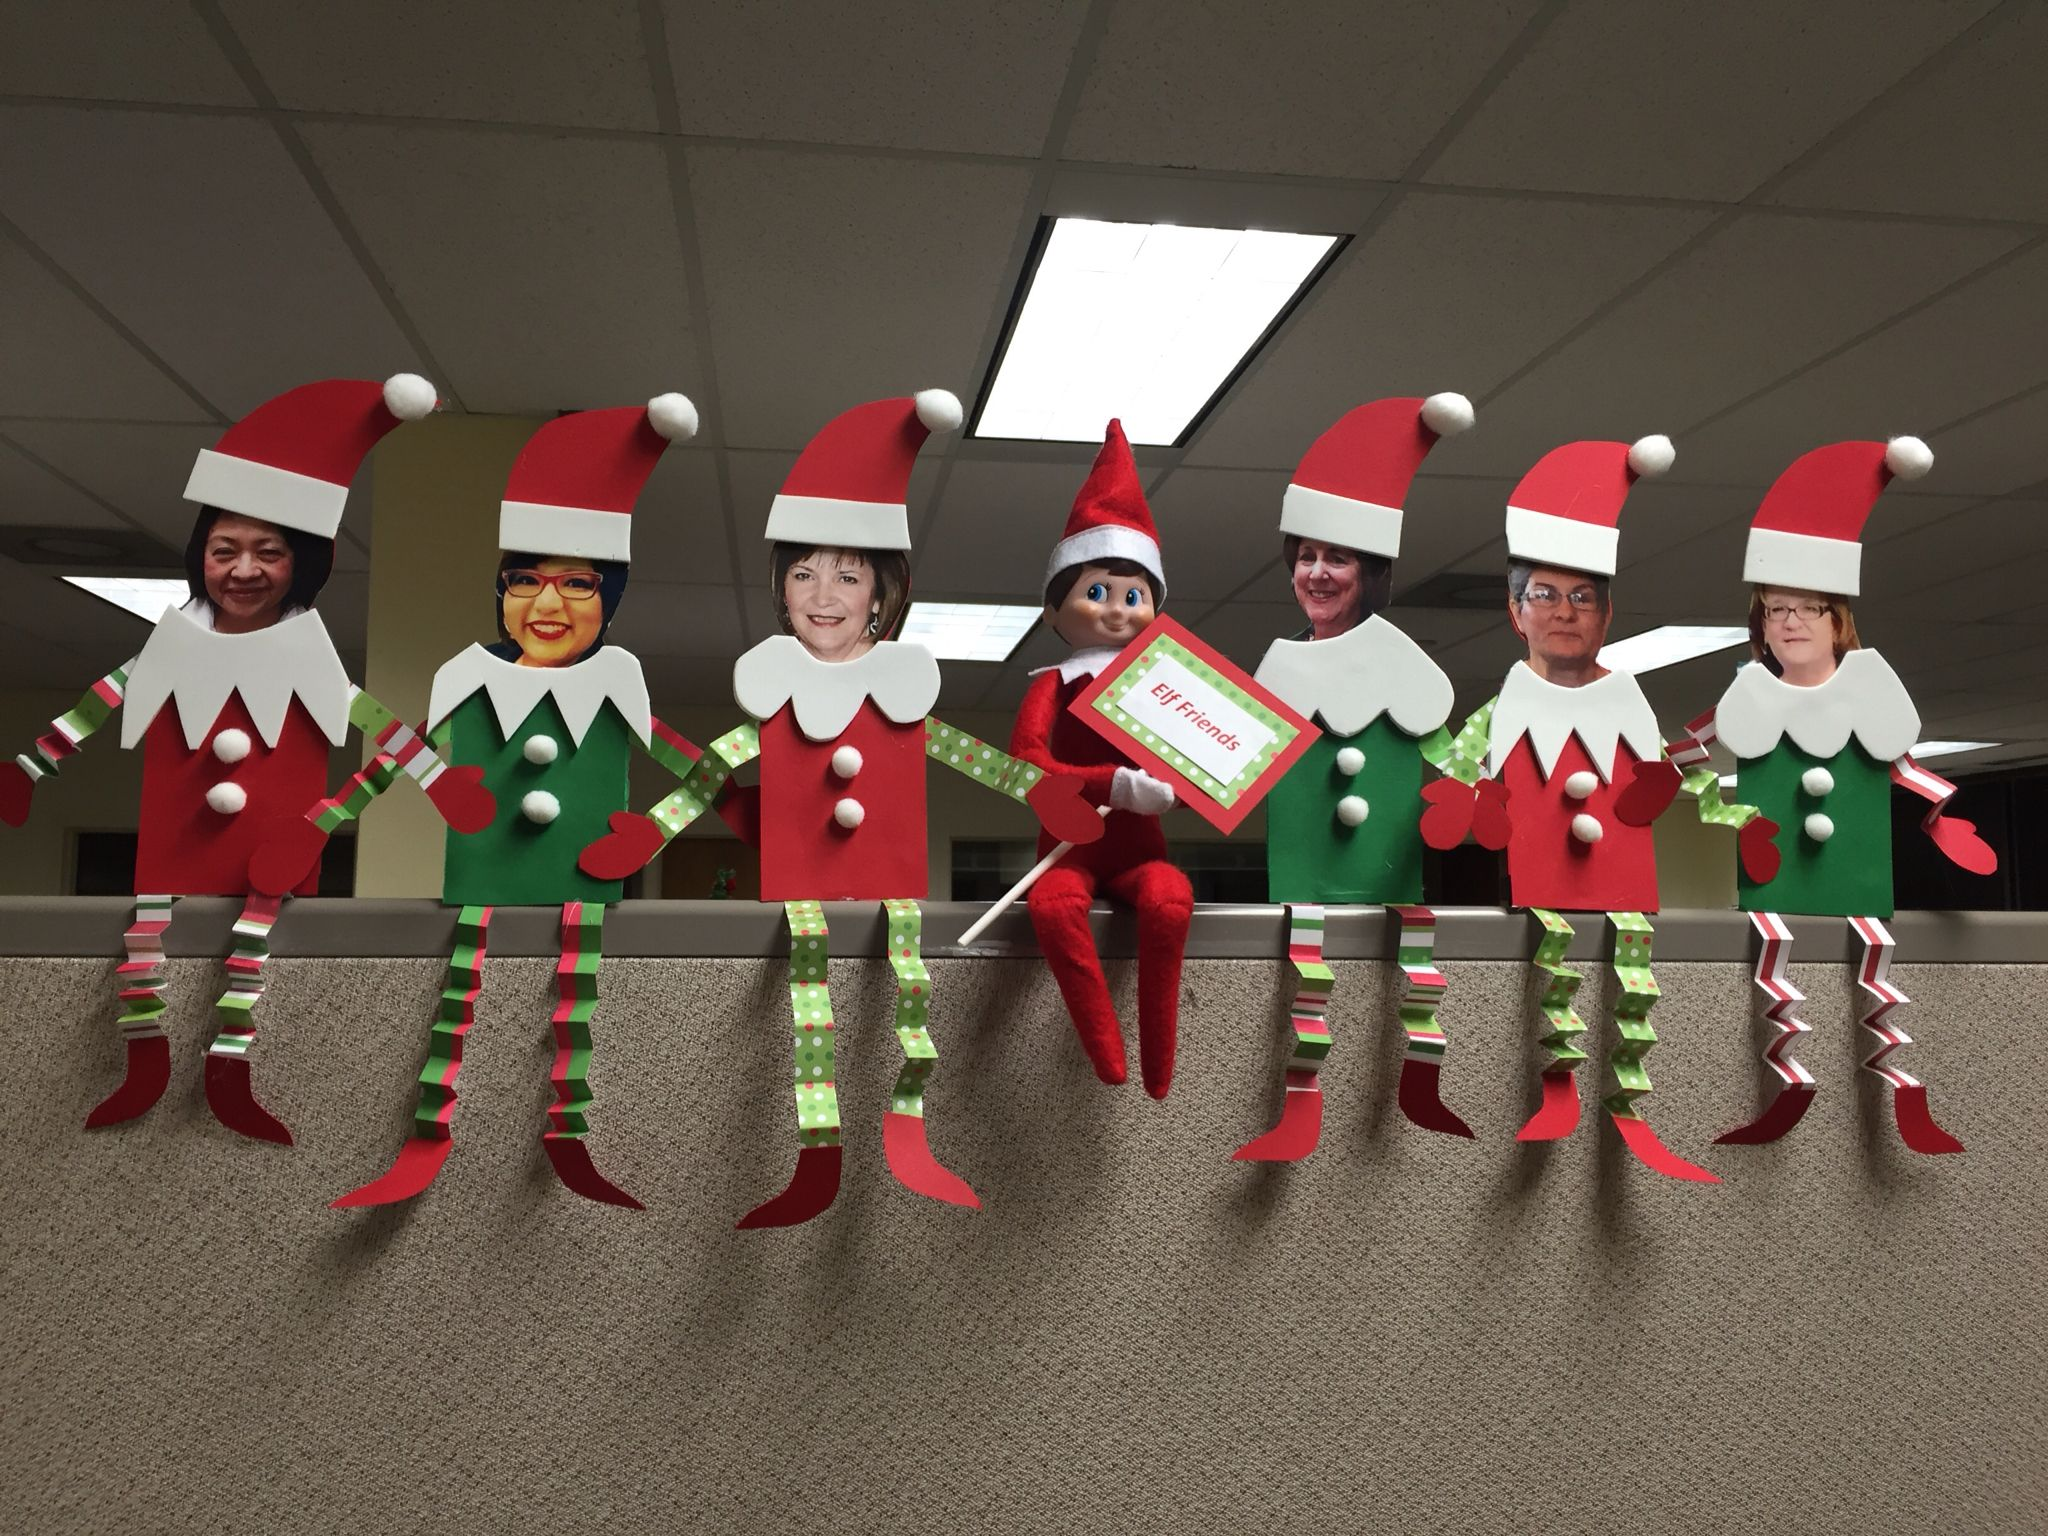 decorating office for christmas ideas. Christmas Office Decorations 31 Decorating For Ideas C